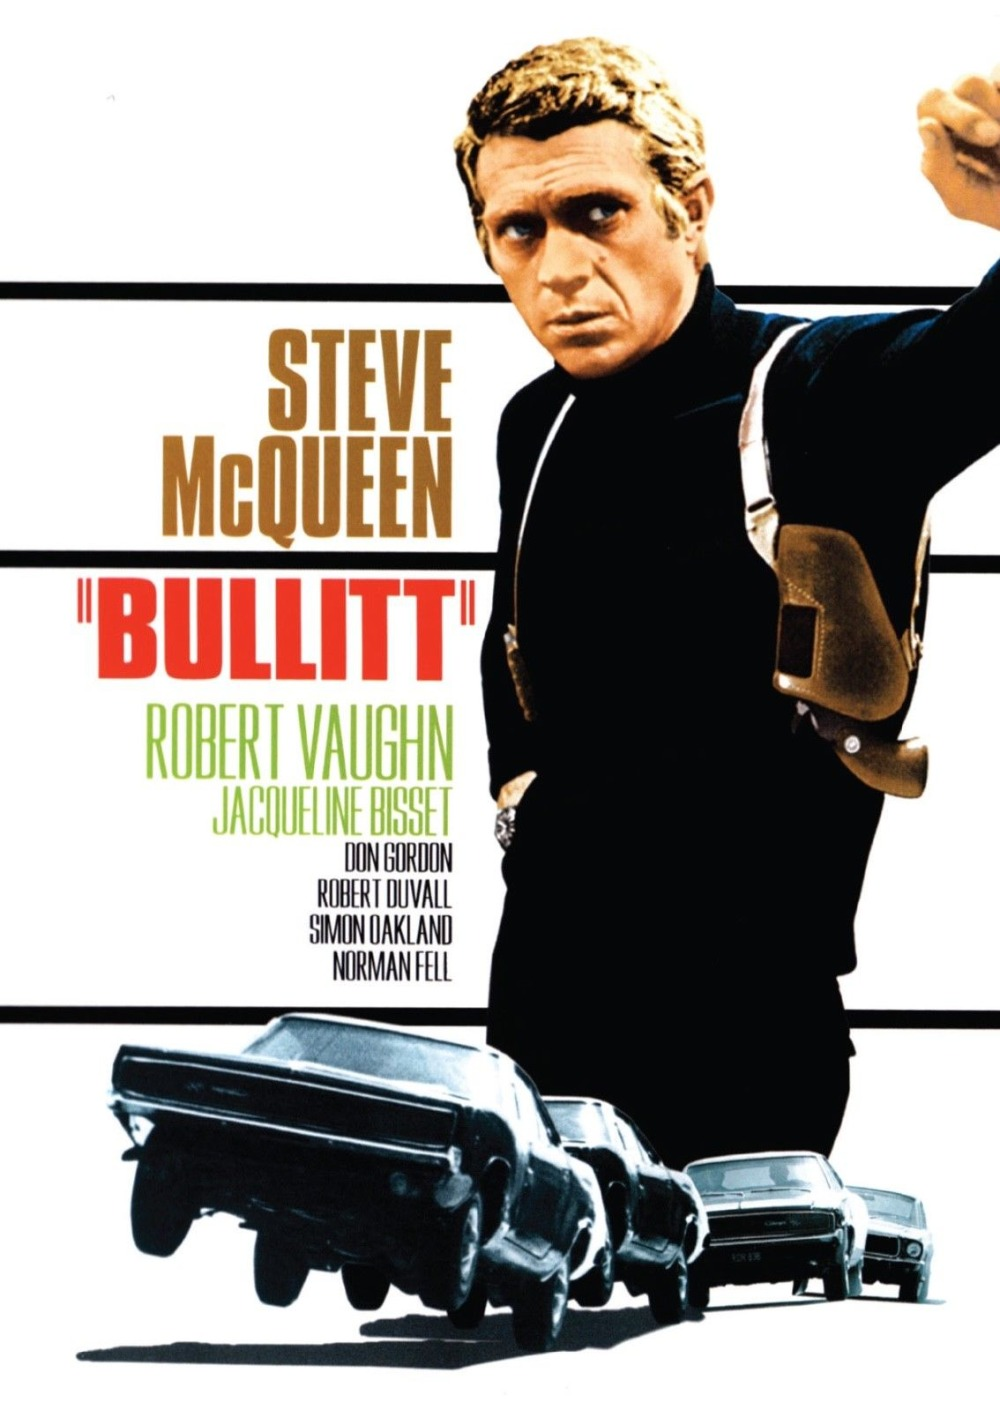 Bullitt Steve McQueen Vintage Movie SILK POSTER Decorative painting 24x36inch